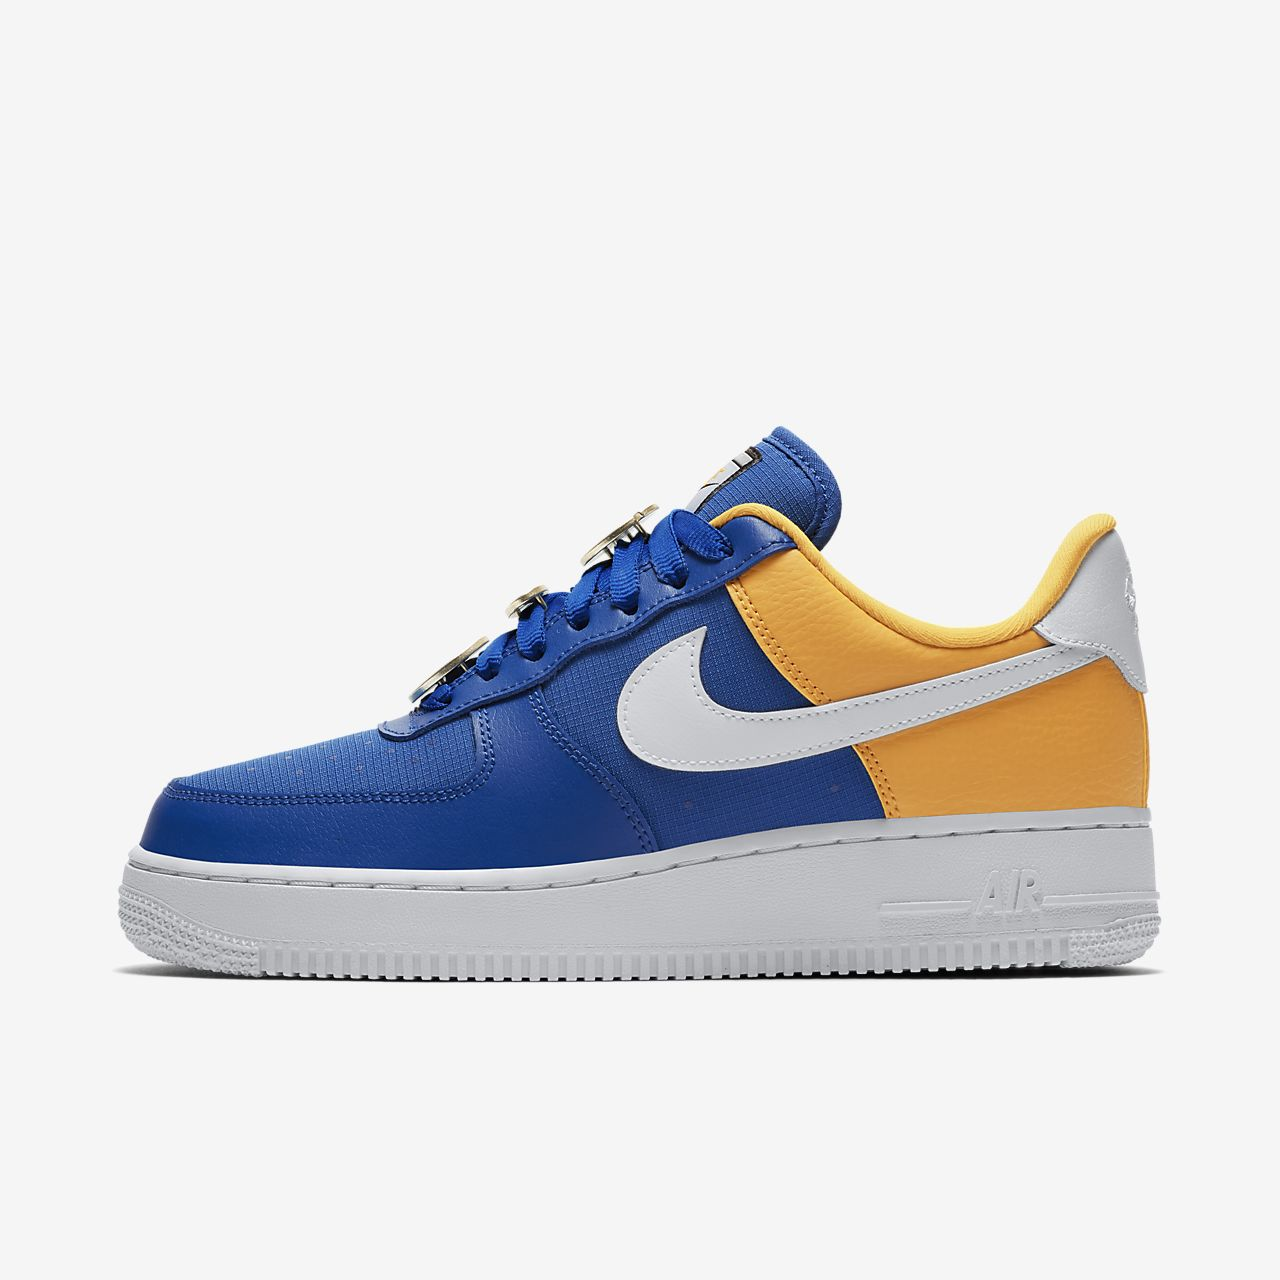 Chaussure Nike Air Force 1 '07 SE pour Femme